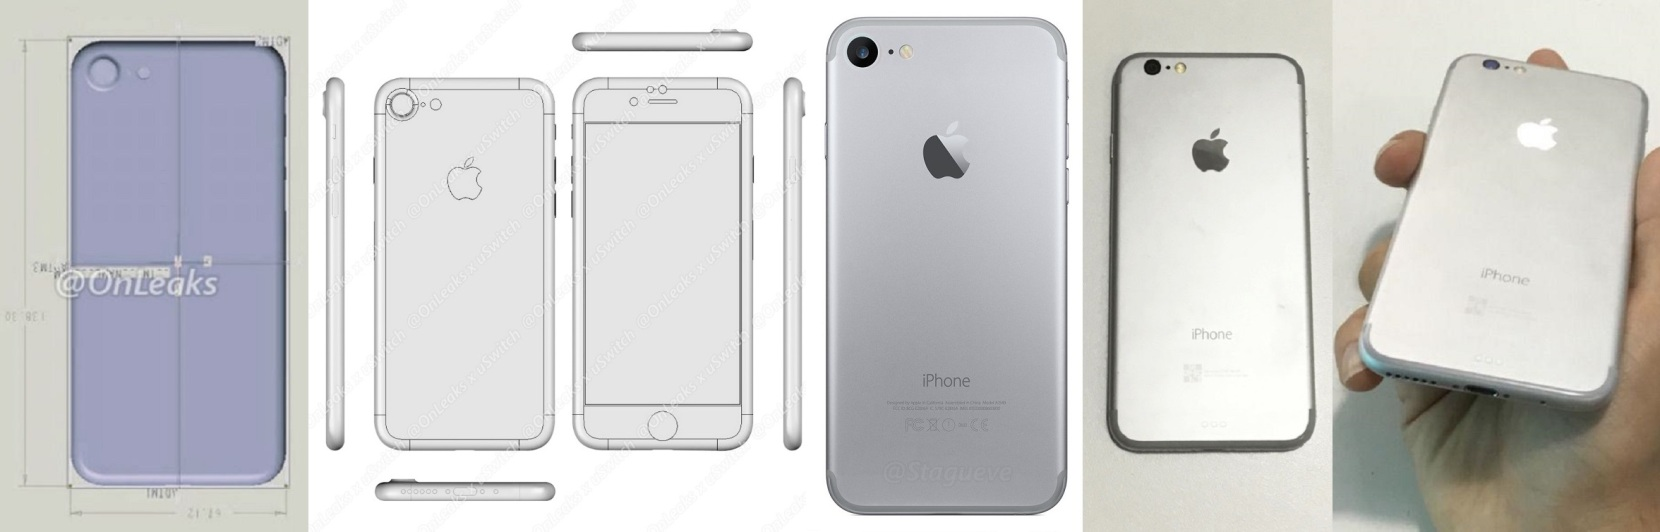 iphone 7 4.7 inch leaks